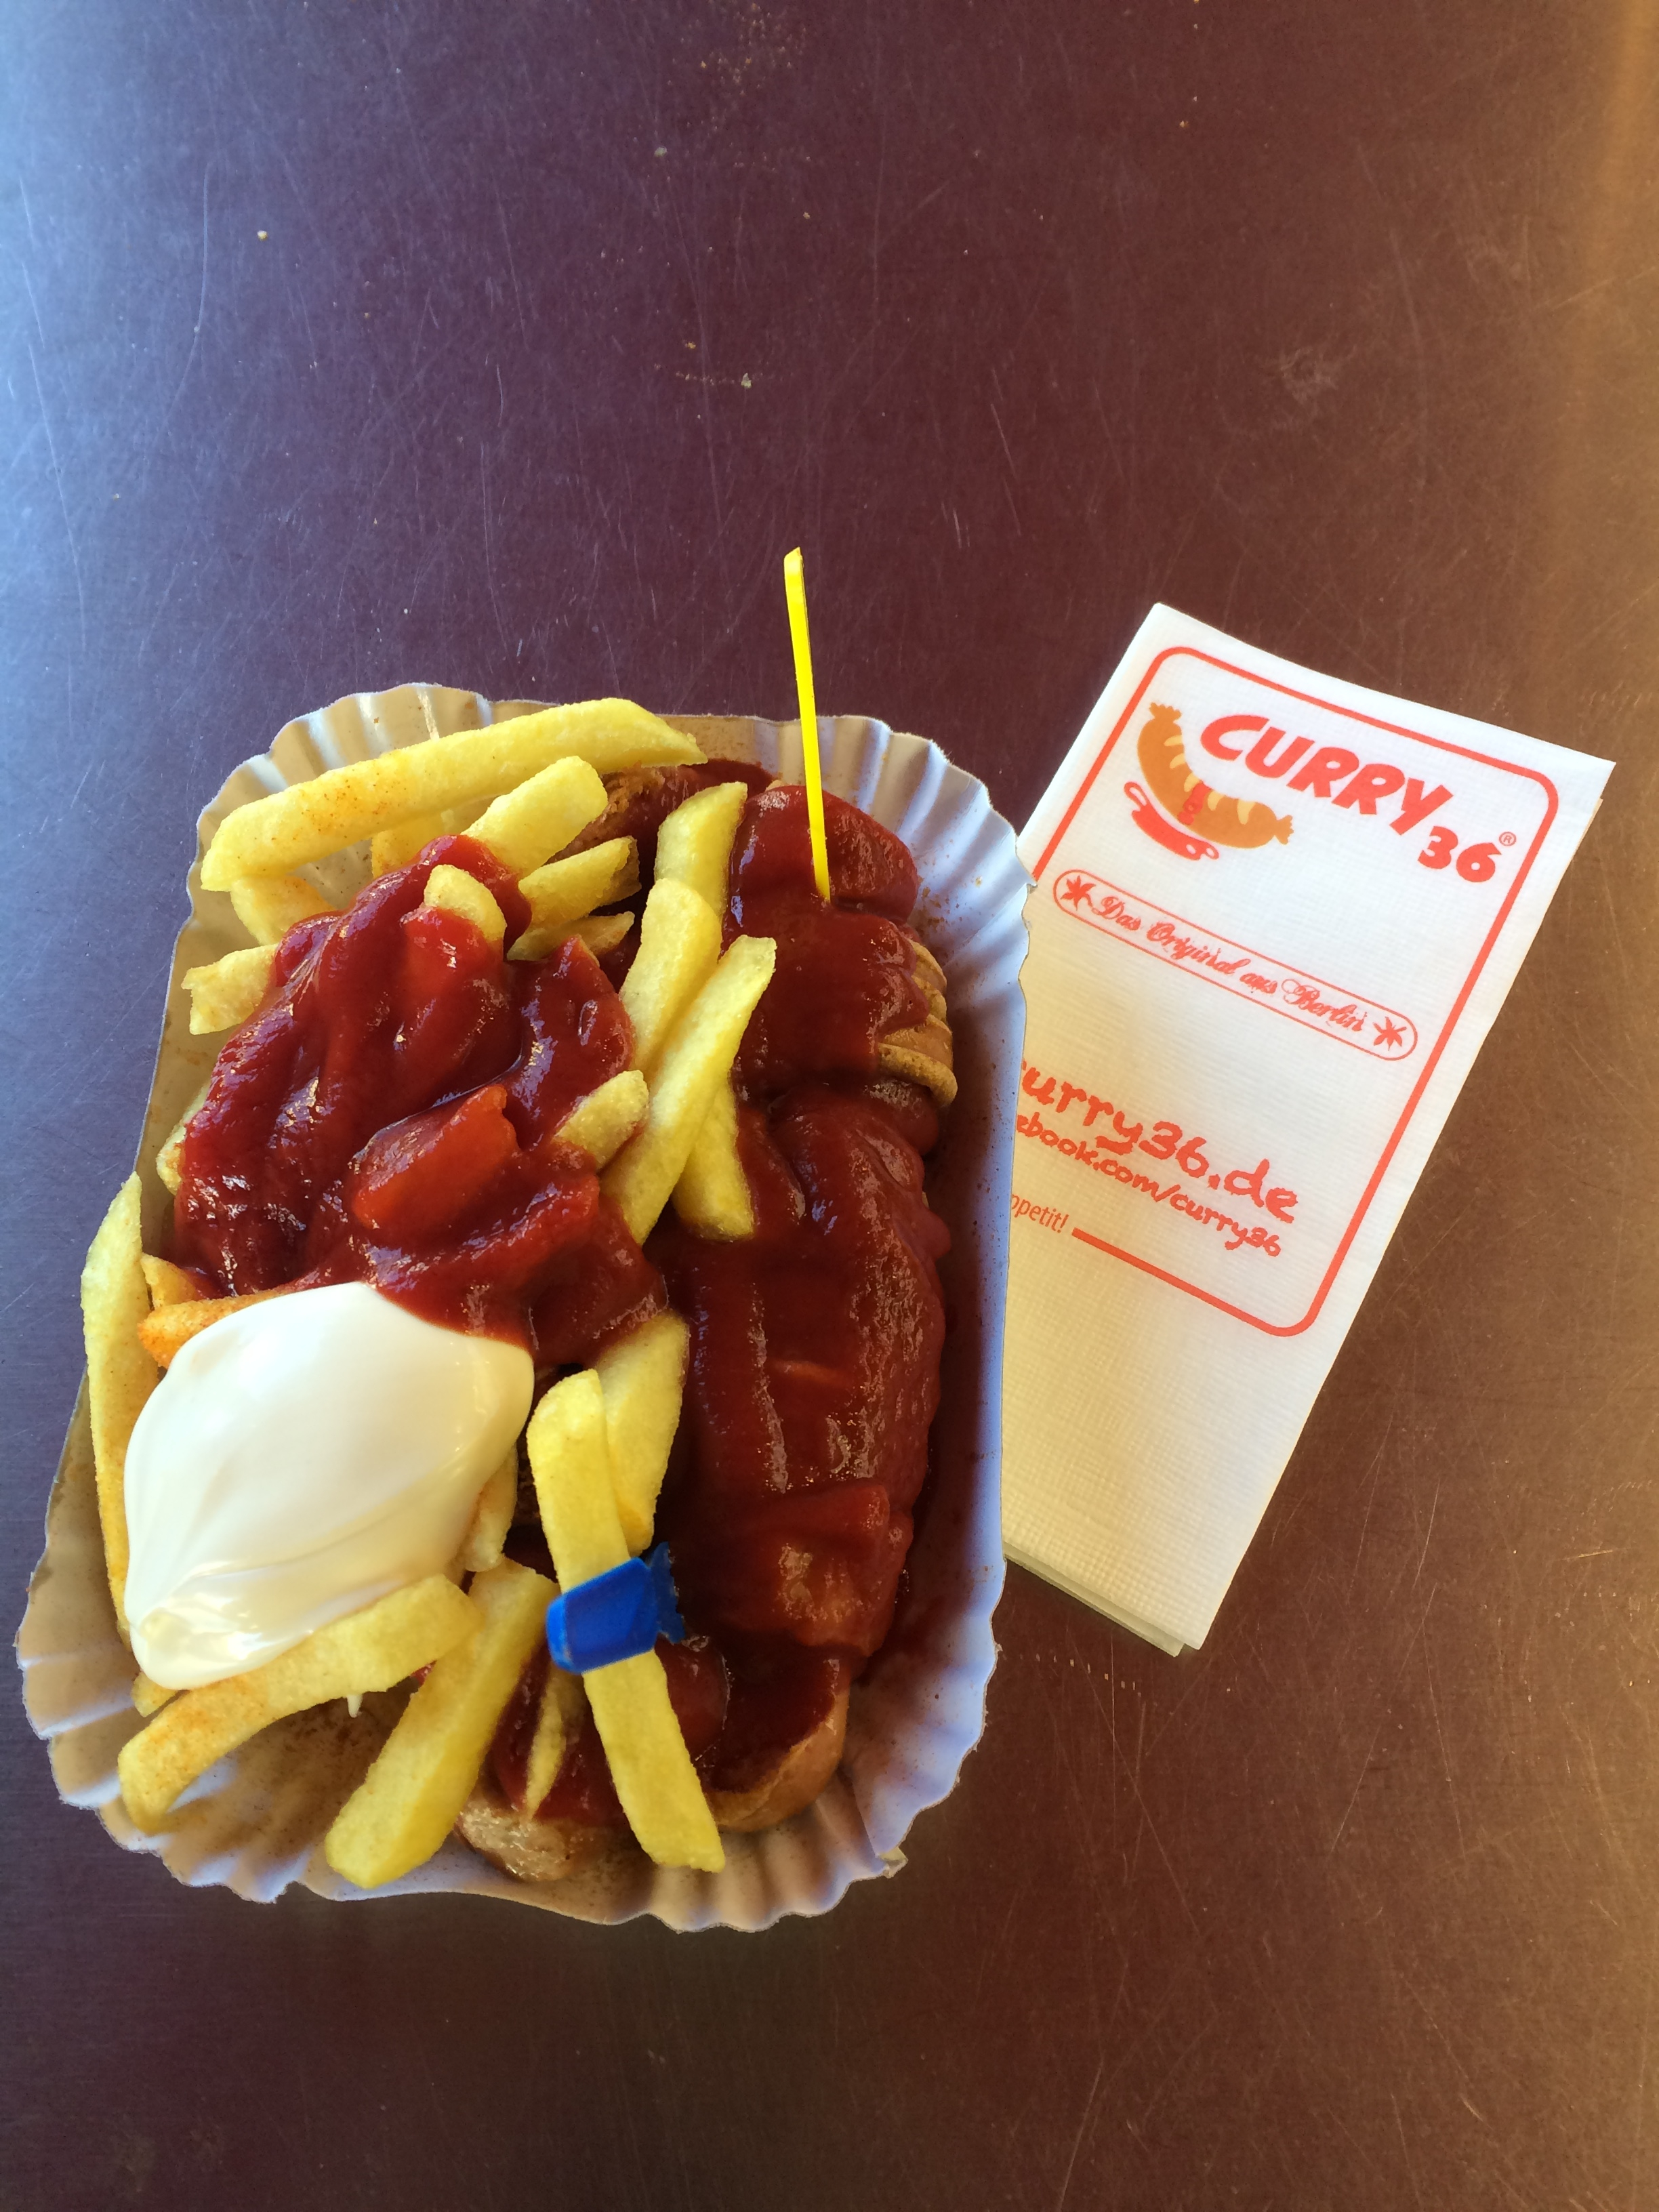 La traditionnelle Currywurst